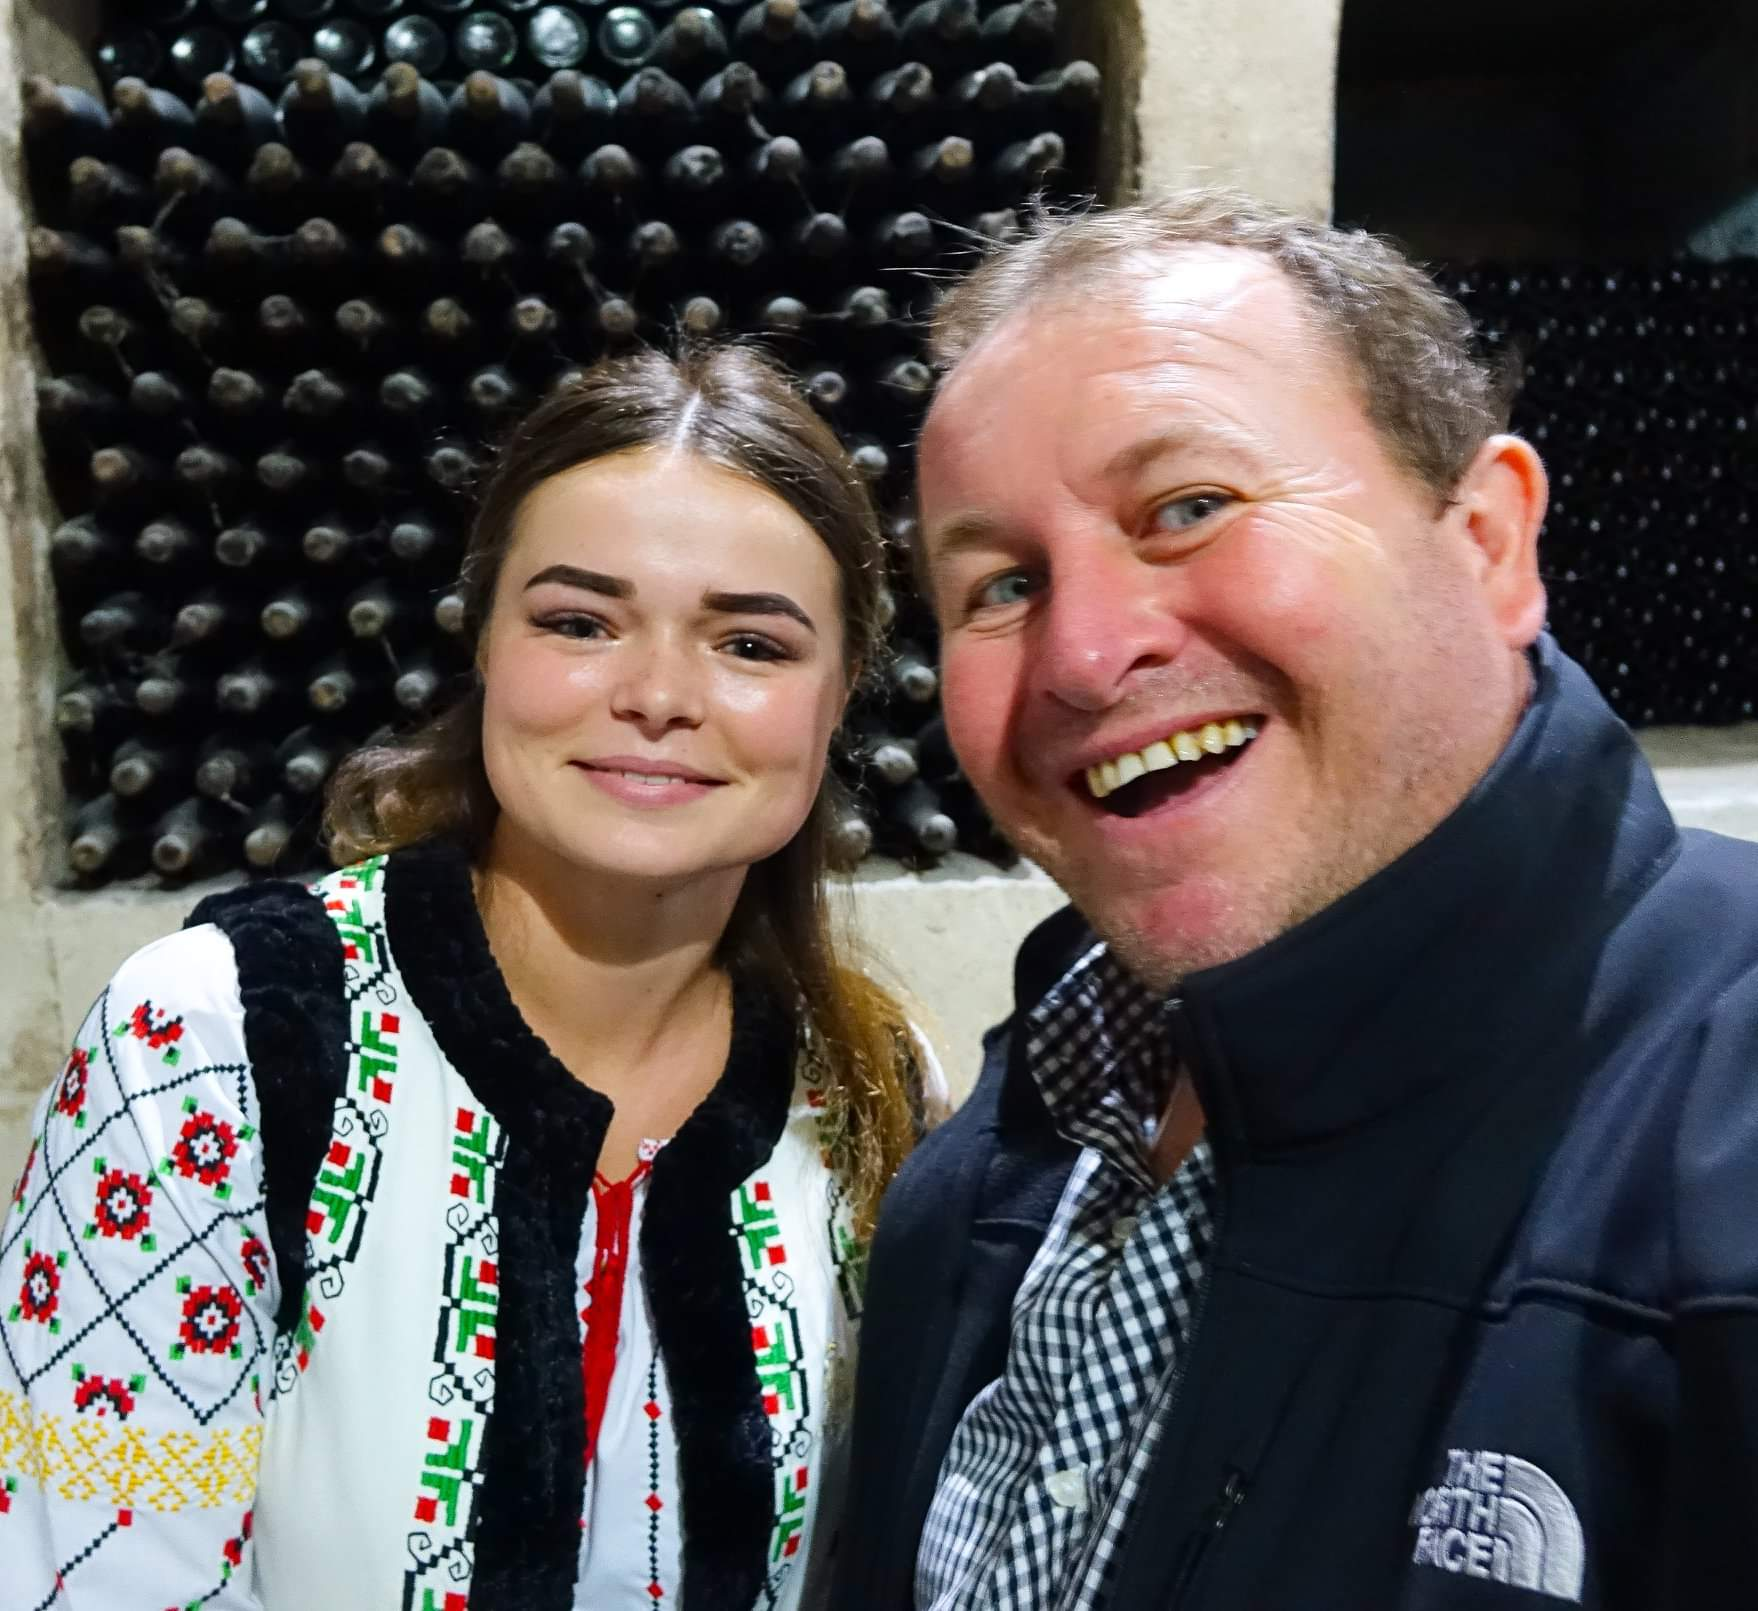 Chisinau, Moldova. Visiting the largest wine collection in the word at Milestii Mici